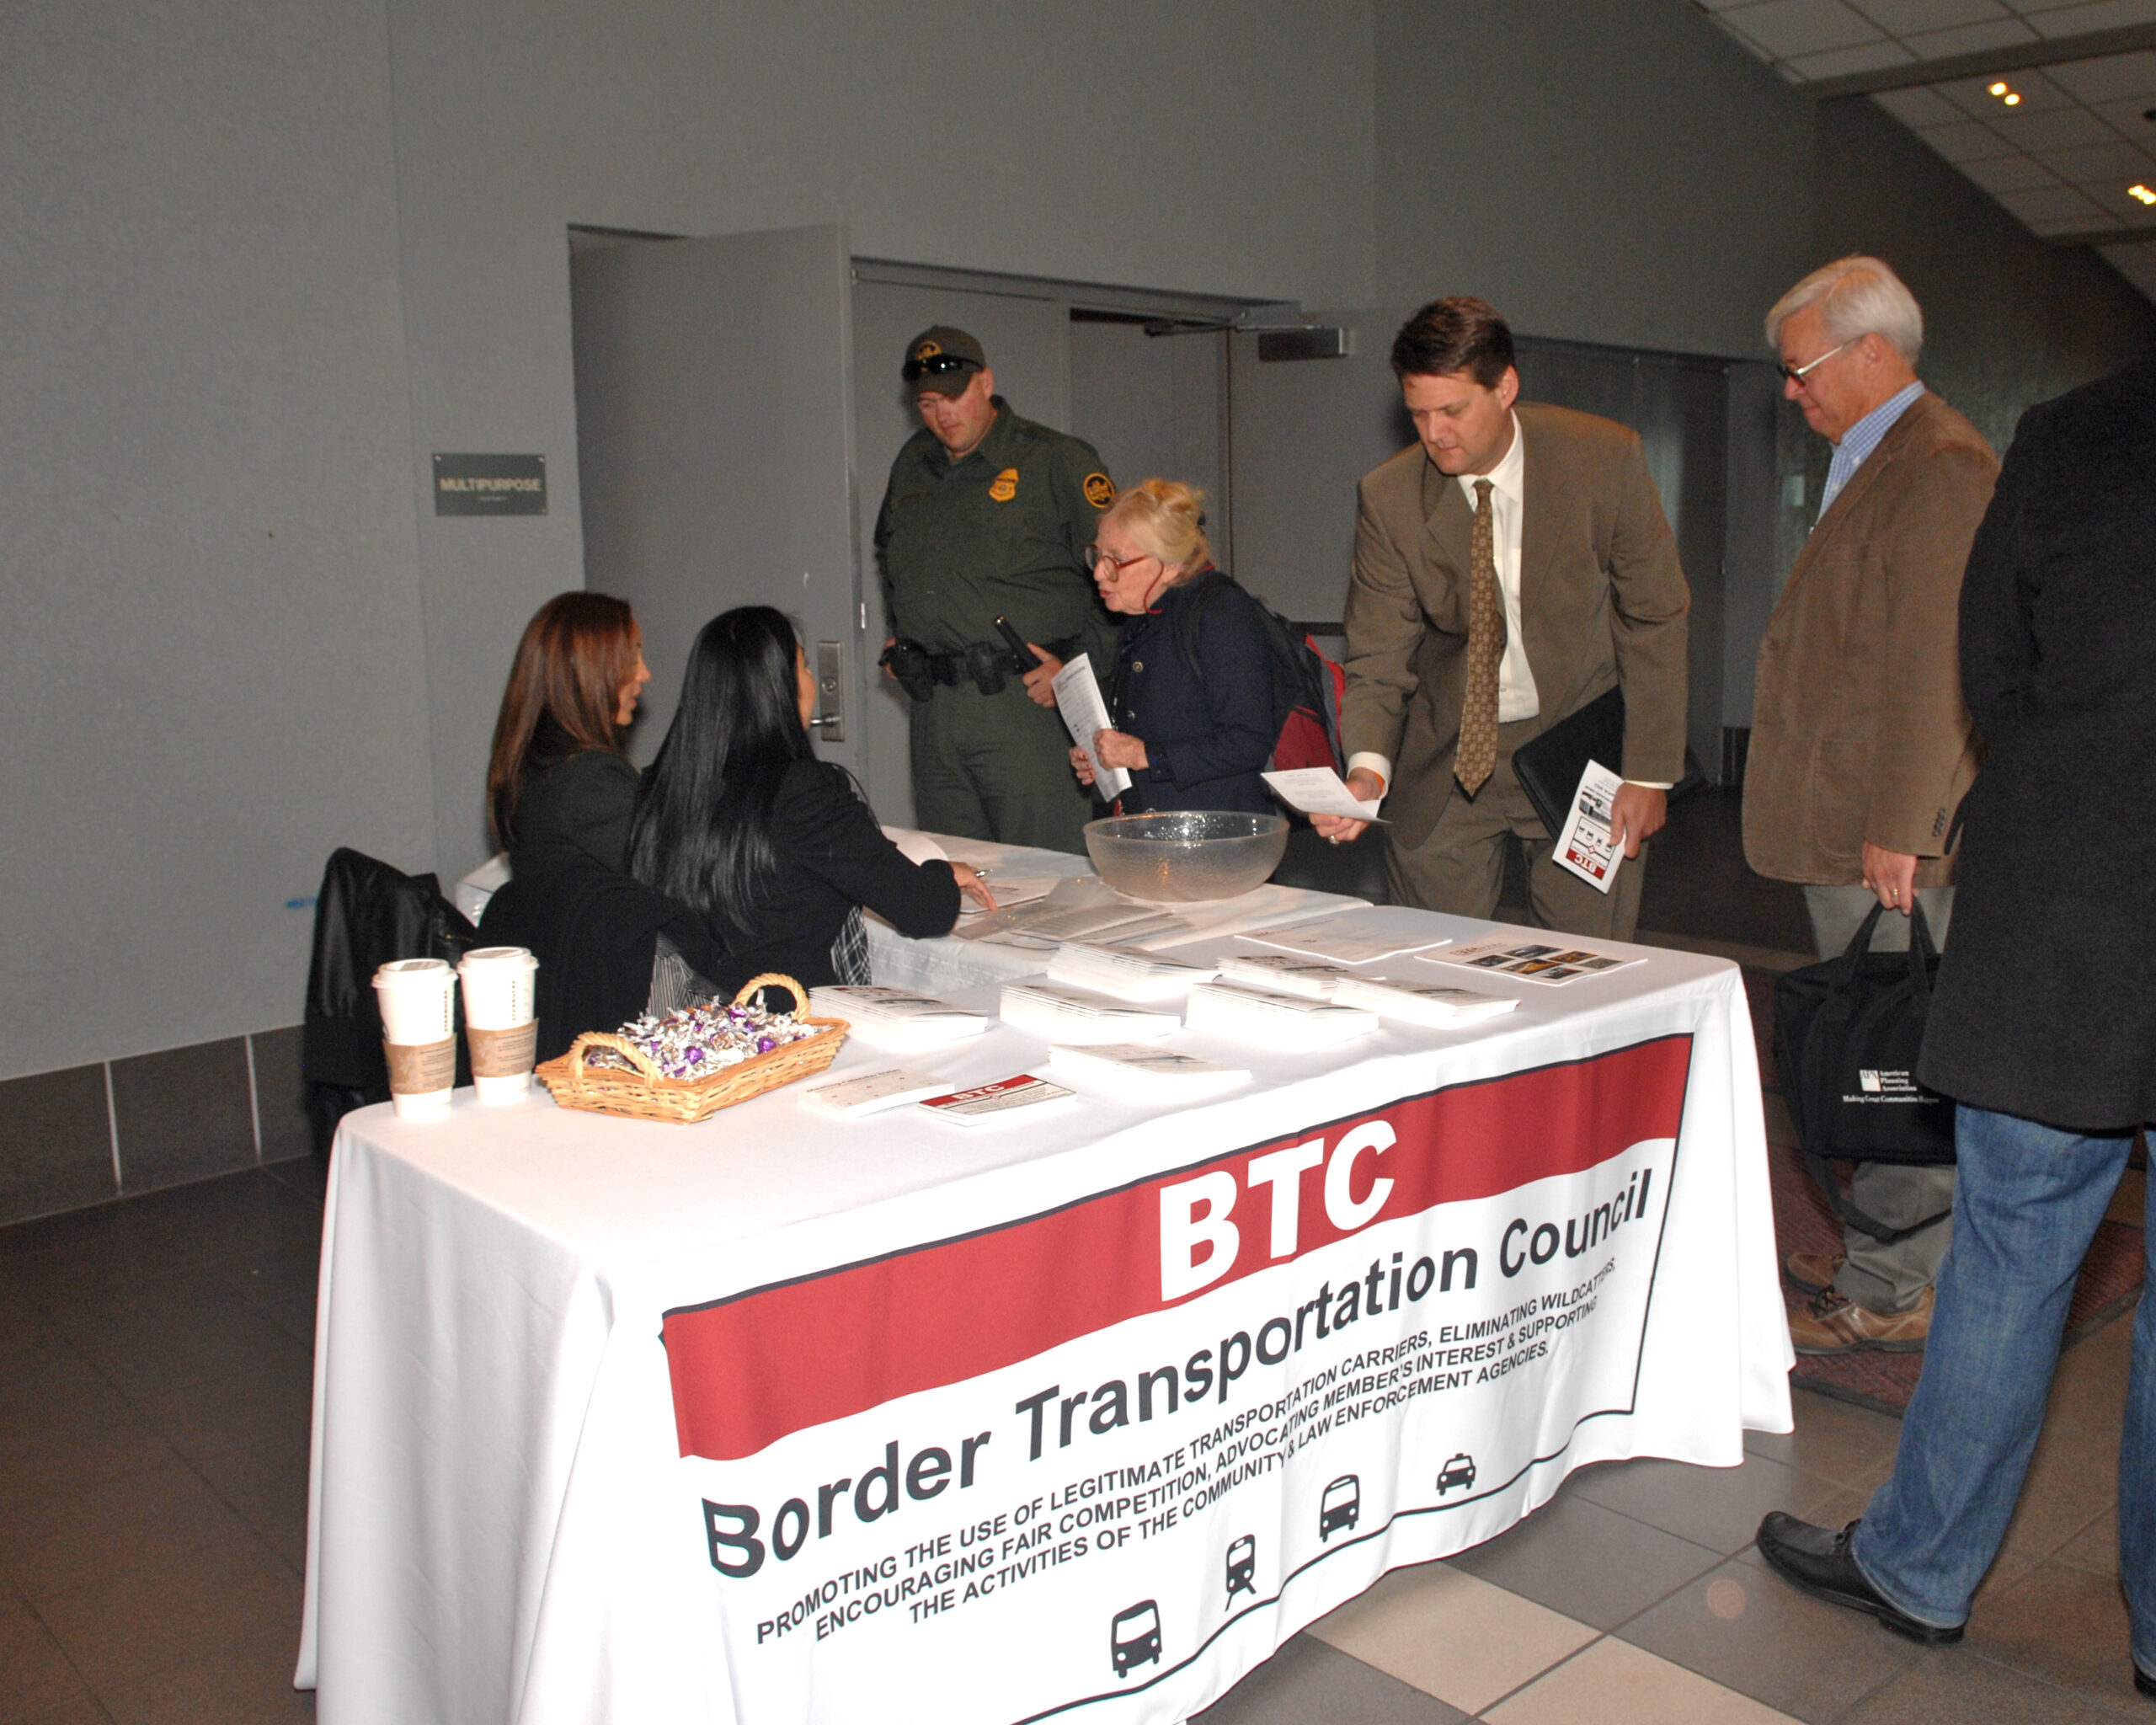 Officials and community leaders attending forum on border transportation